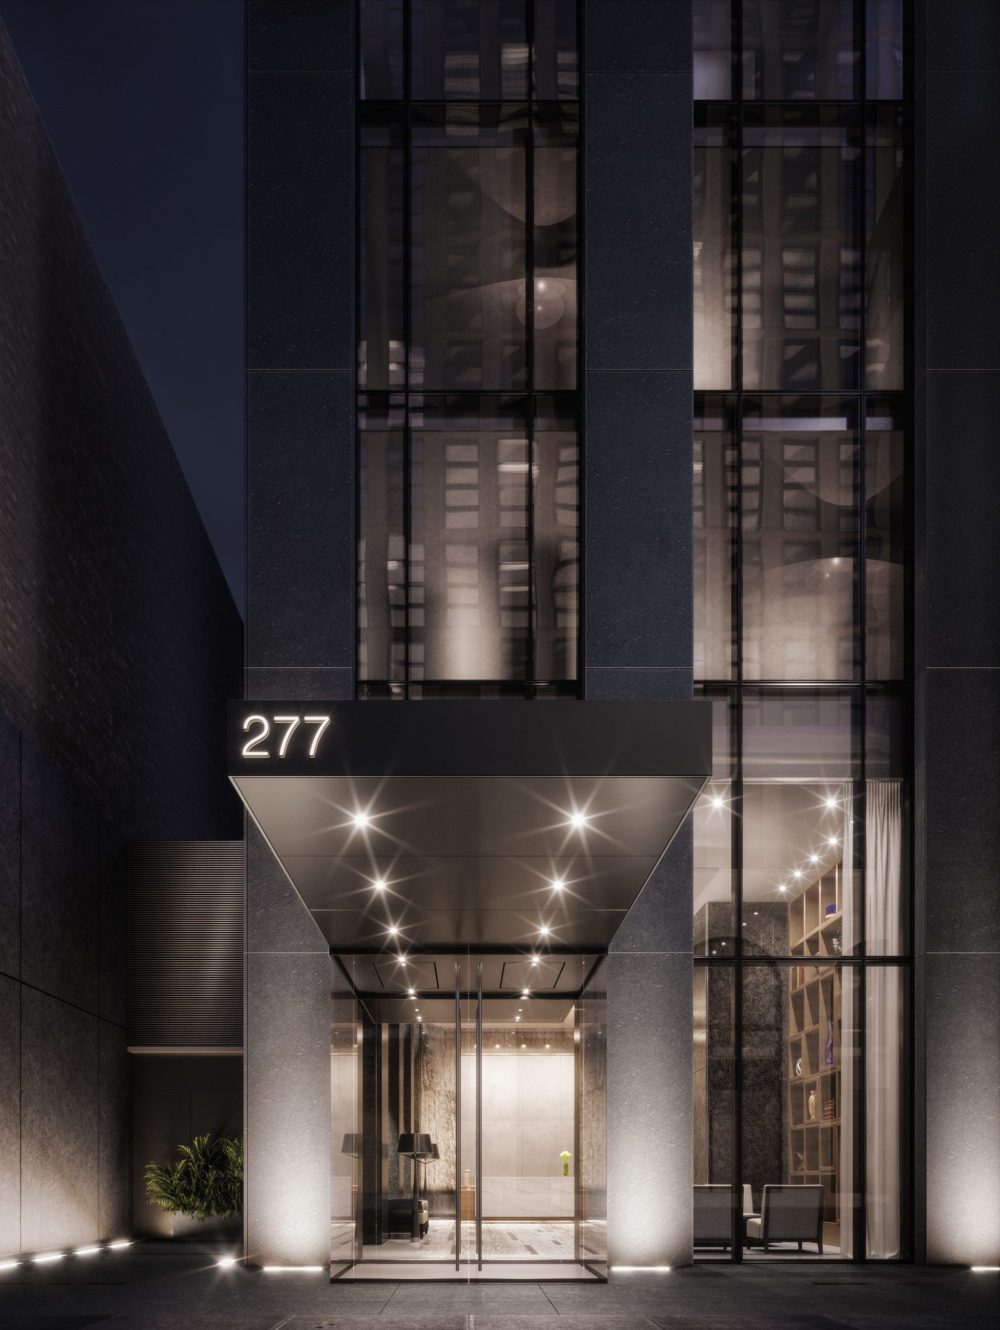 Entry of 277 Fifth Avenue luxury condos in New York. Night time picture with ground lighting, double doors & entrance canopy.